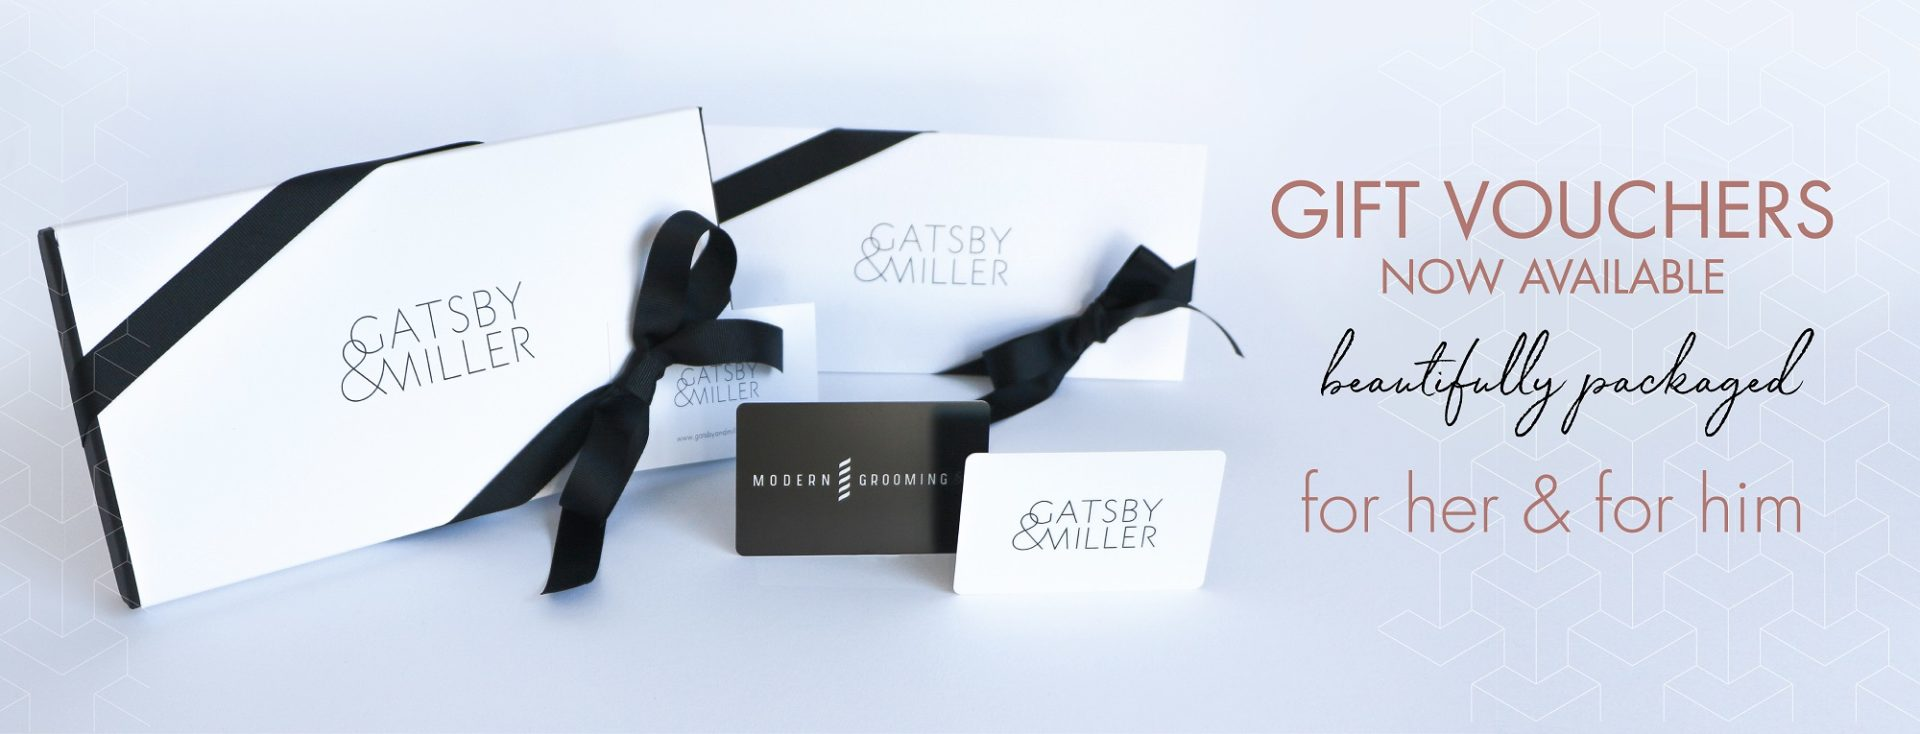 gift vouchers gatsby miller hair beauty salon amersham